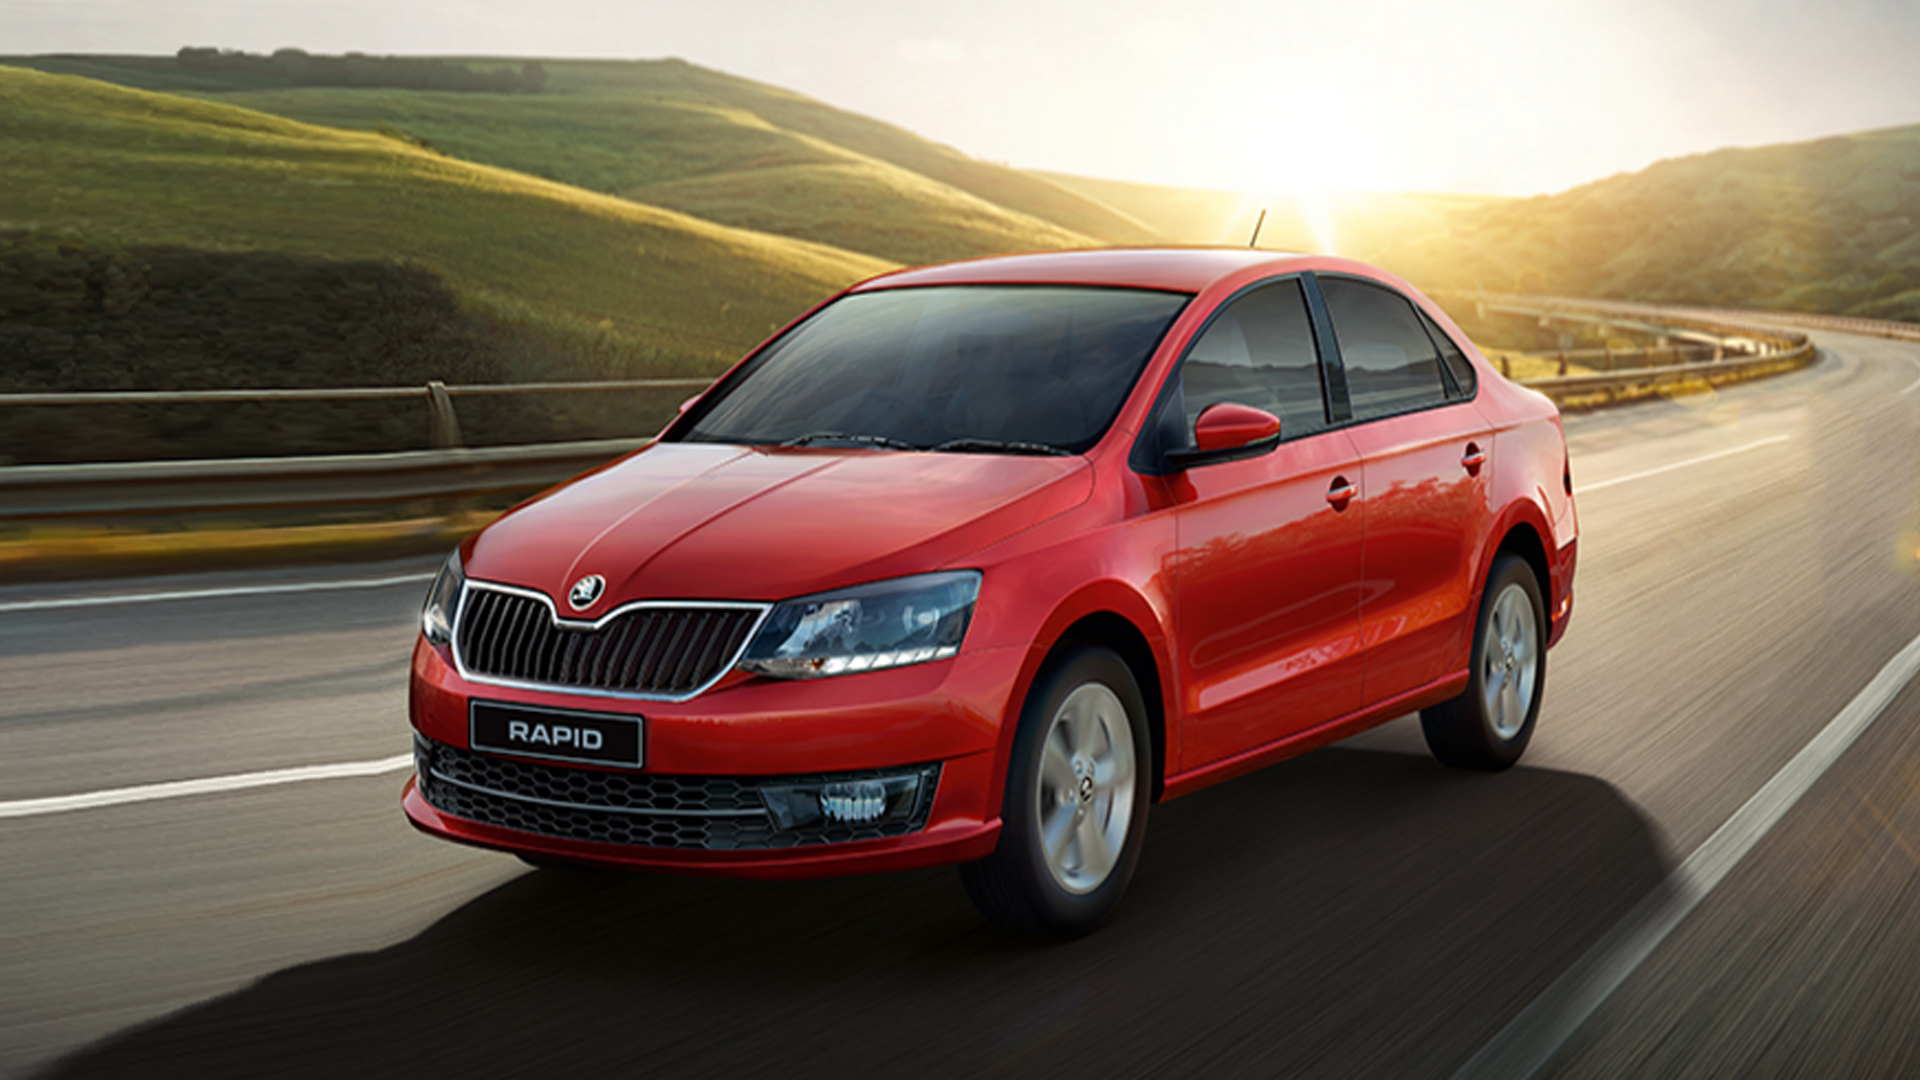 skoda rapid 2016 price mileage reviews specification gallery overdrive. Black Bedroom Furniture Sets. Home Design Ideas